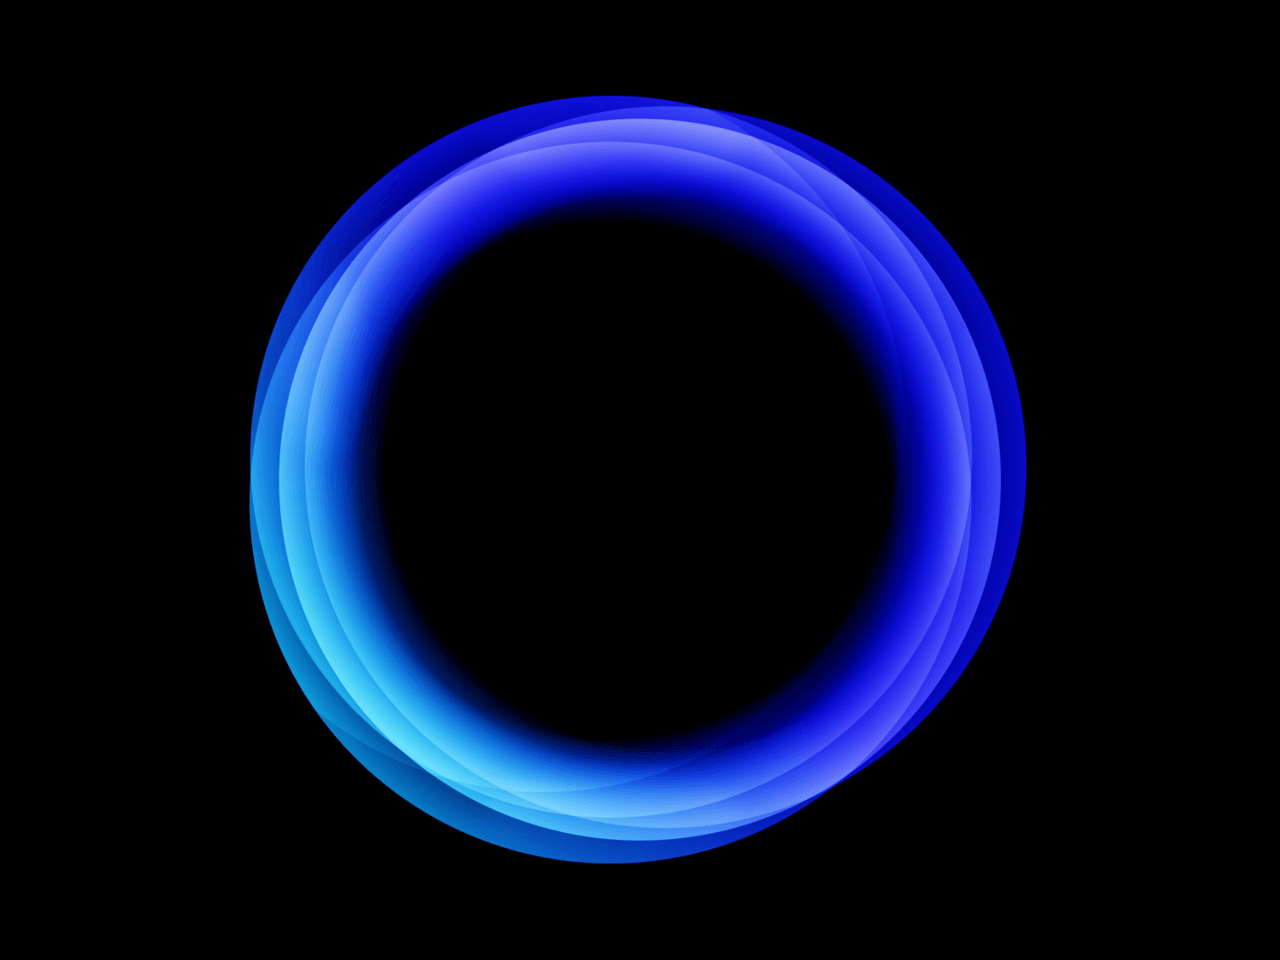 Blue Circle Wallpapers - Wallpaper Cave